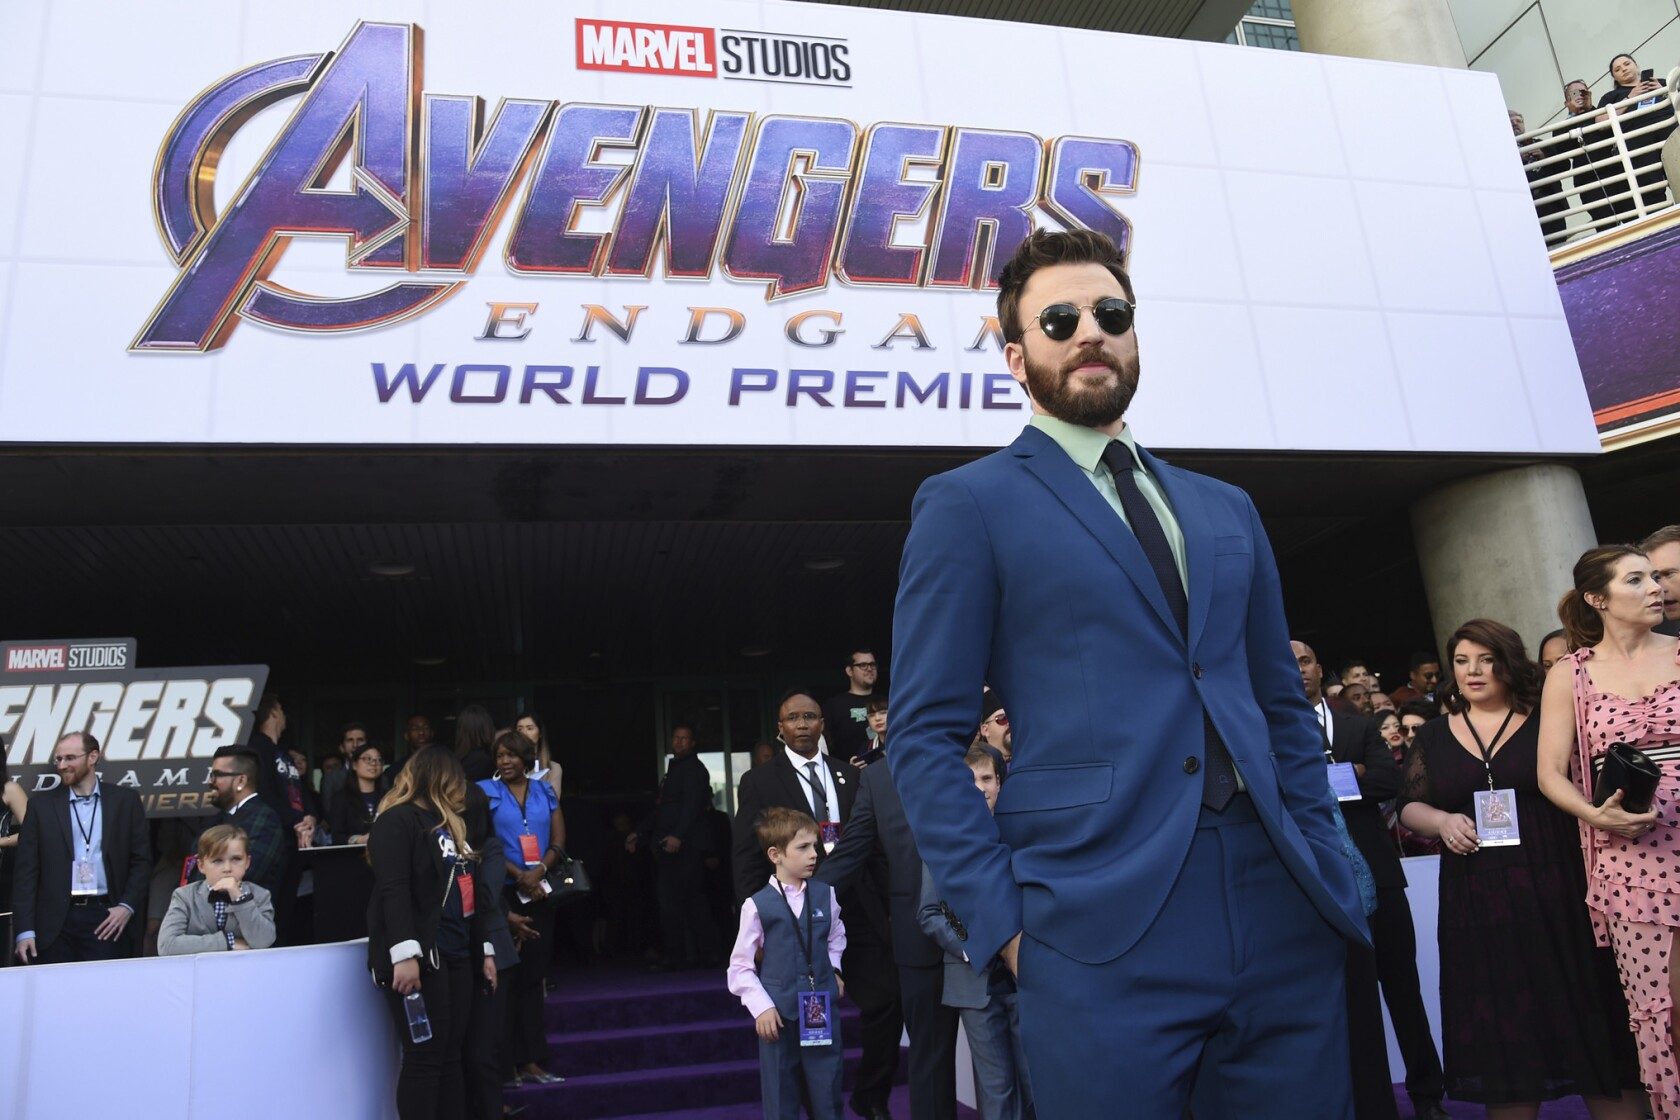 Avengers get epic send-off at 'Endgame' world premiere - The